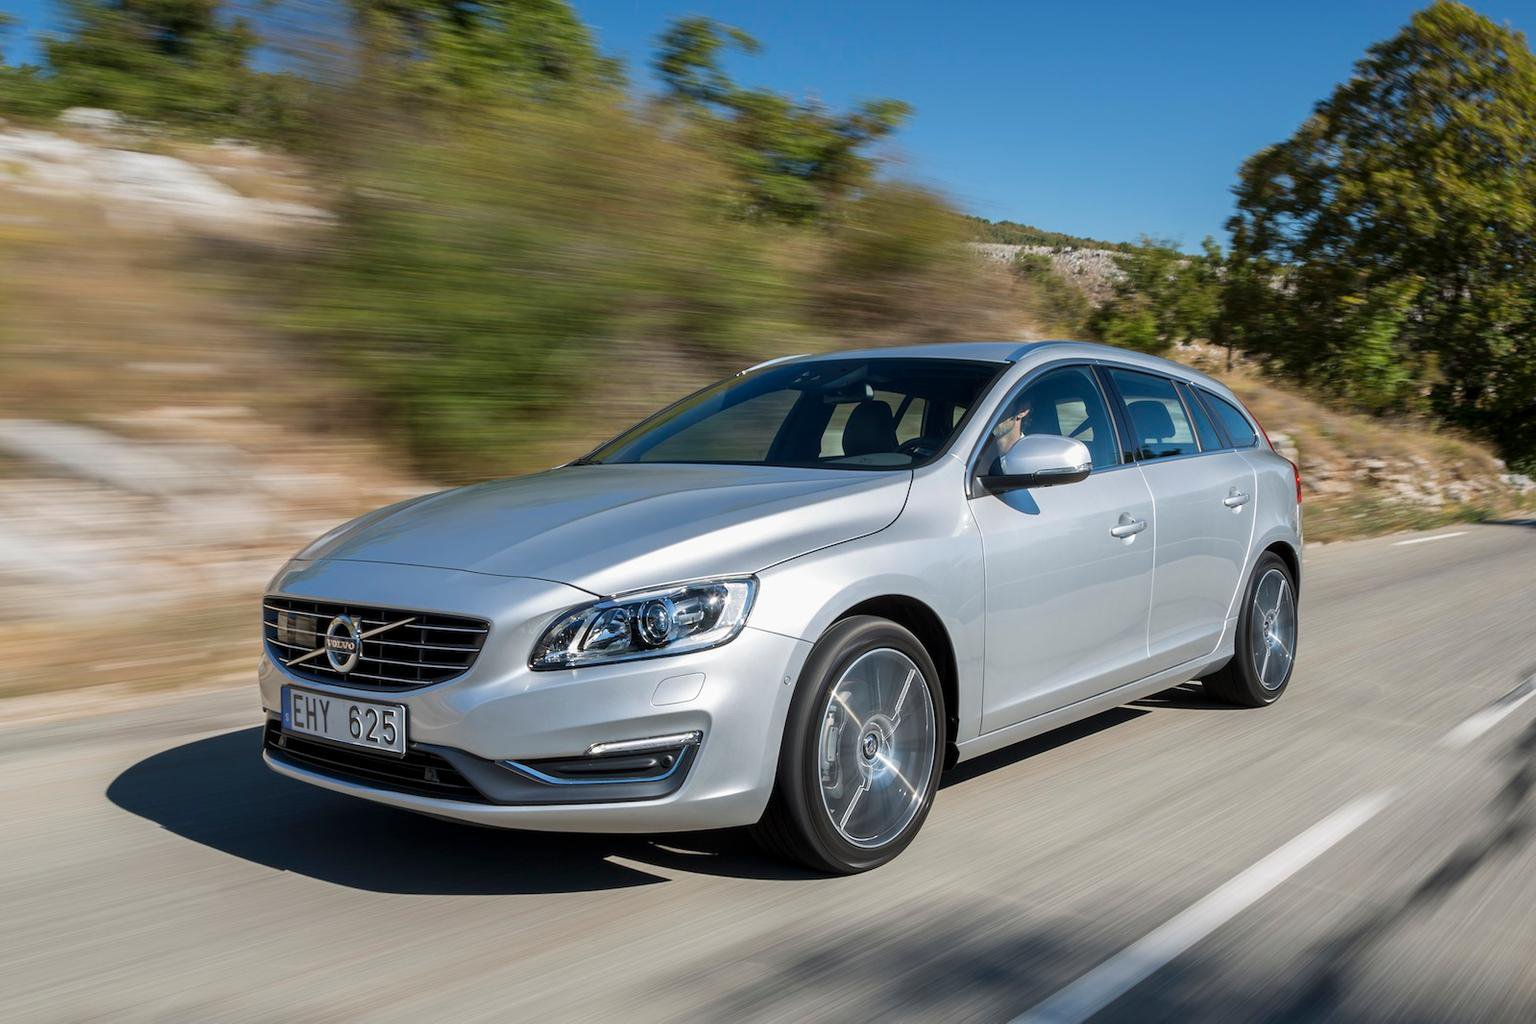 2013 Volvo V60 D4 review